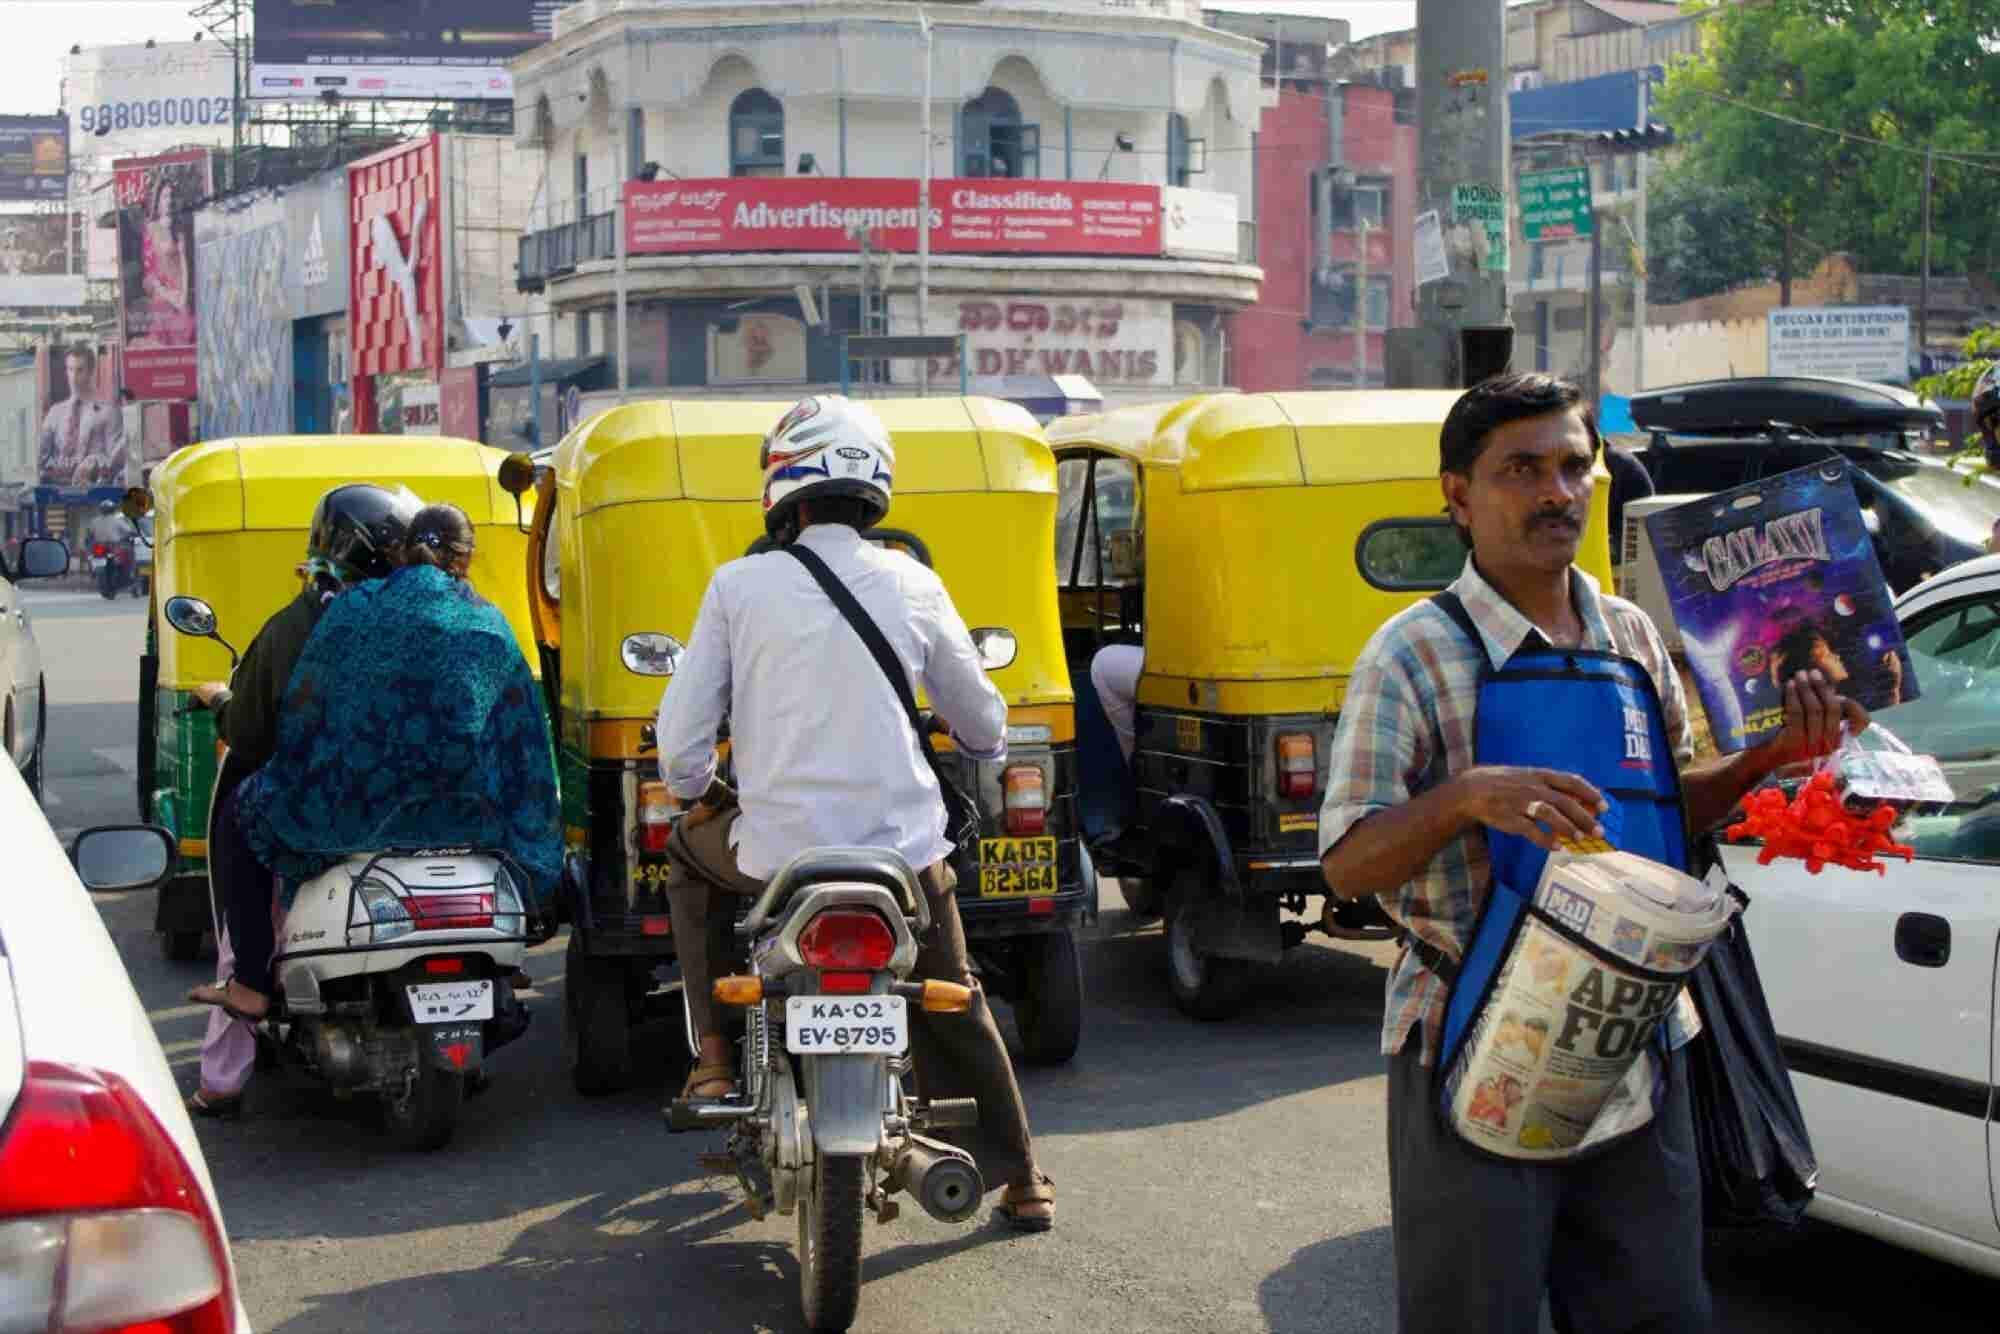 Uber and Competitor Launch Motorcycle Services in India on the Same Da...